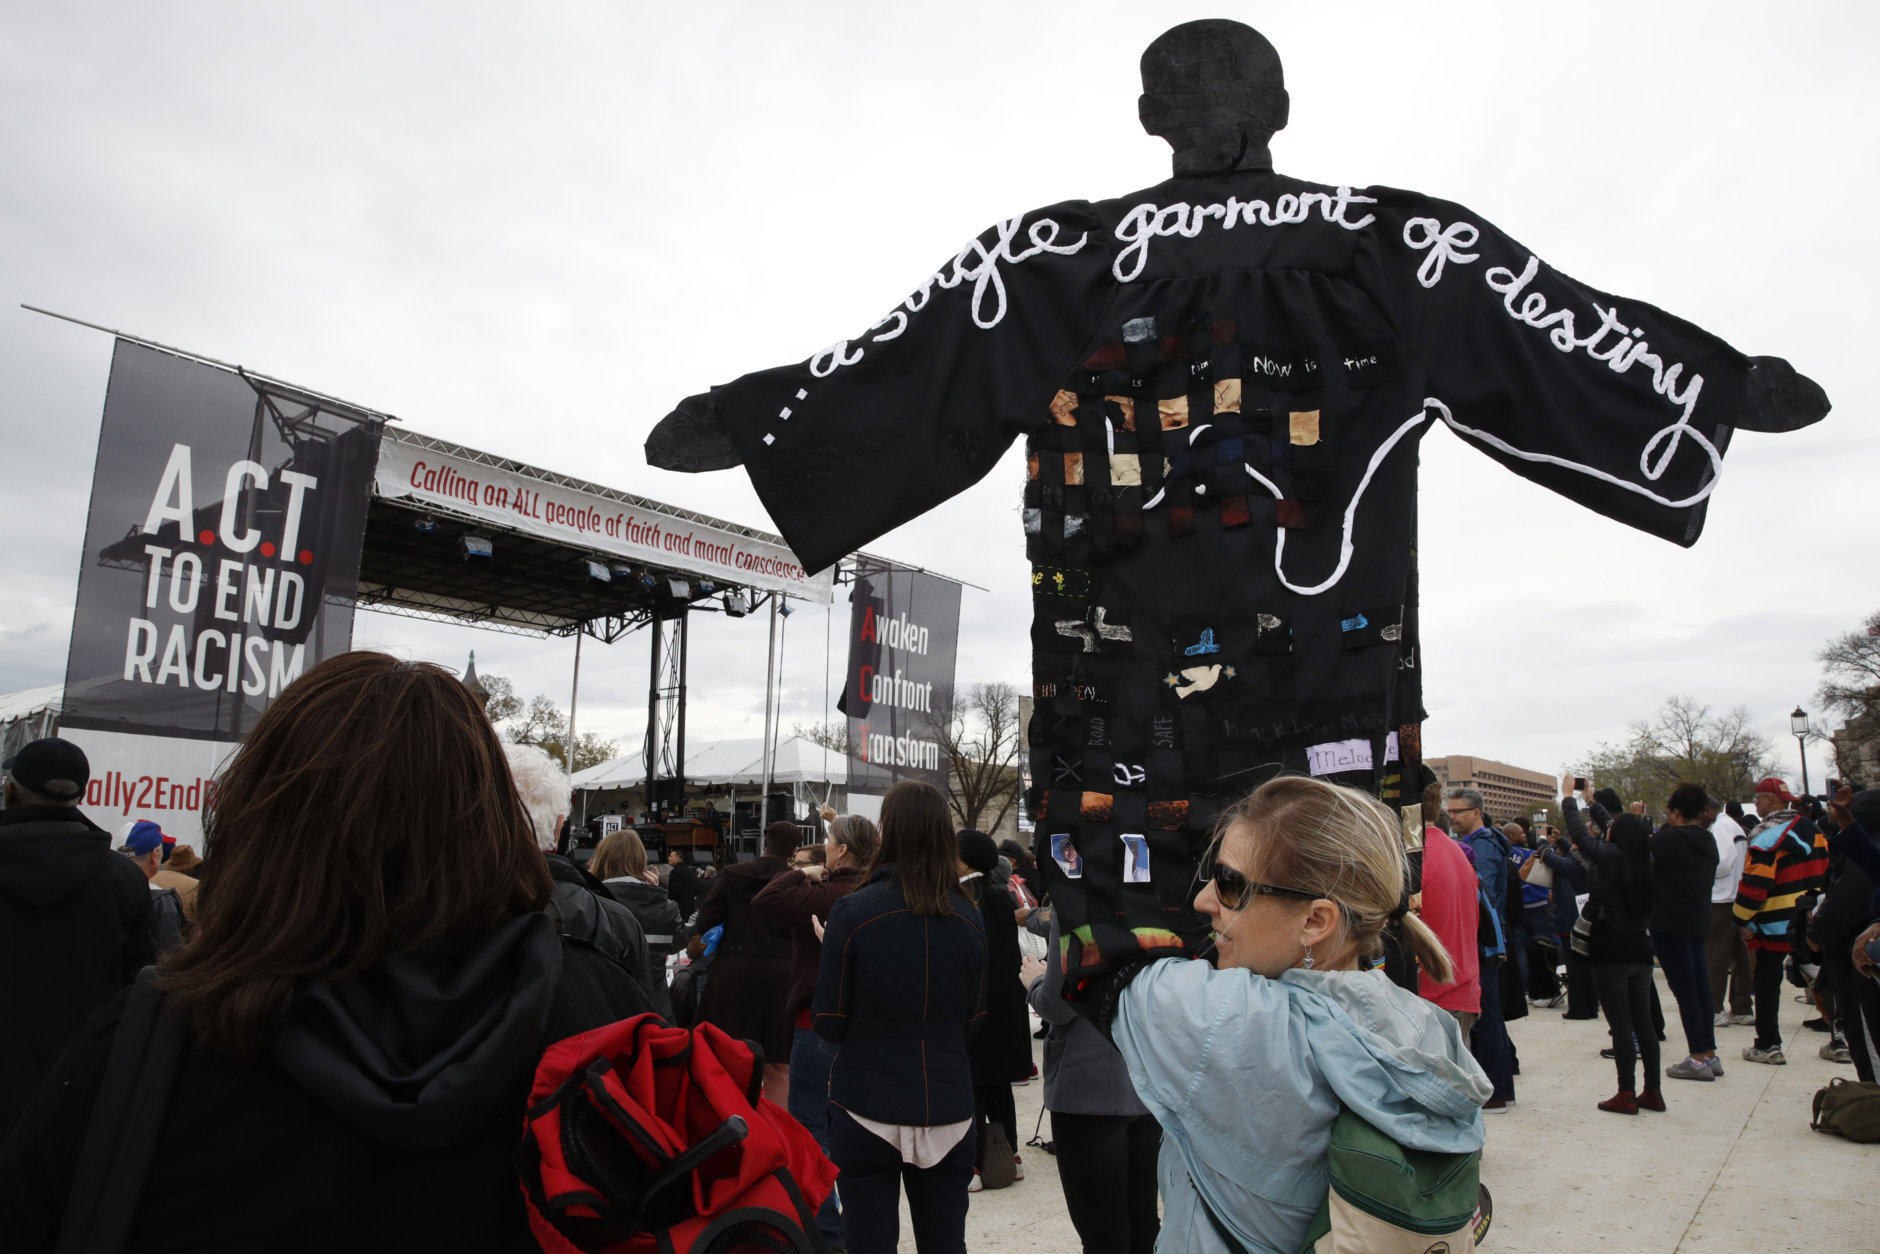 Molly Jackman, of Kensington, Md., holds up a sign with a silhouette of Martin Luther King Jr., while attending the A.C.T. To End Racism rally, Wednesday, April 4, 2018, on the National Mall in Washington, on the 50th anniversary of King's assassination. (AP Photo/Jacquelyn Martin)